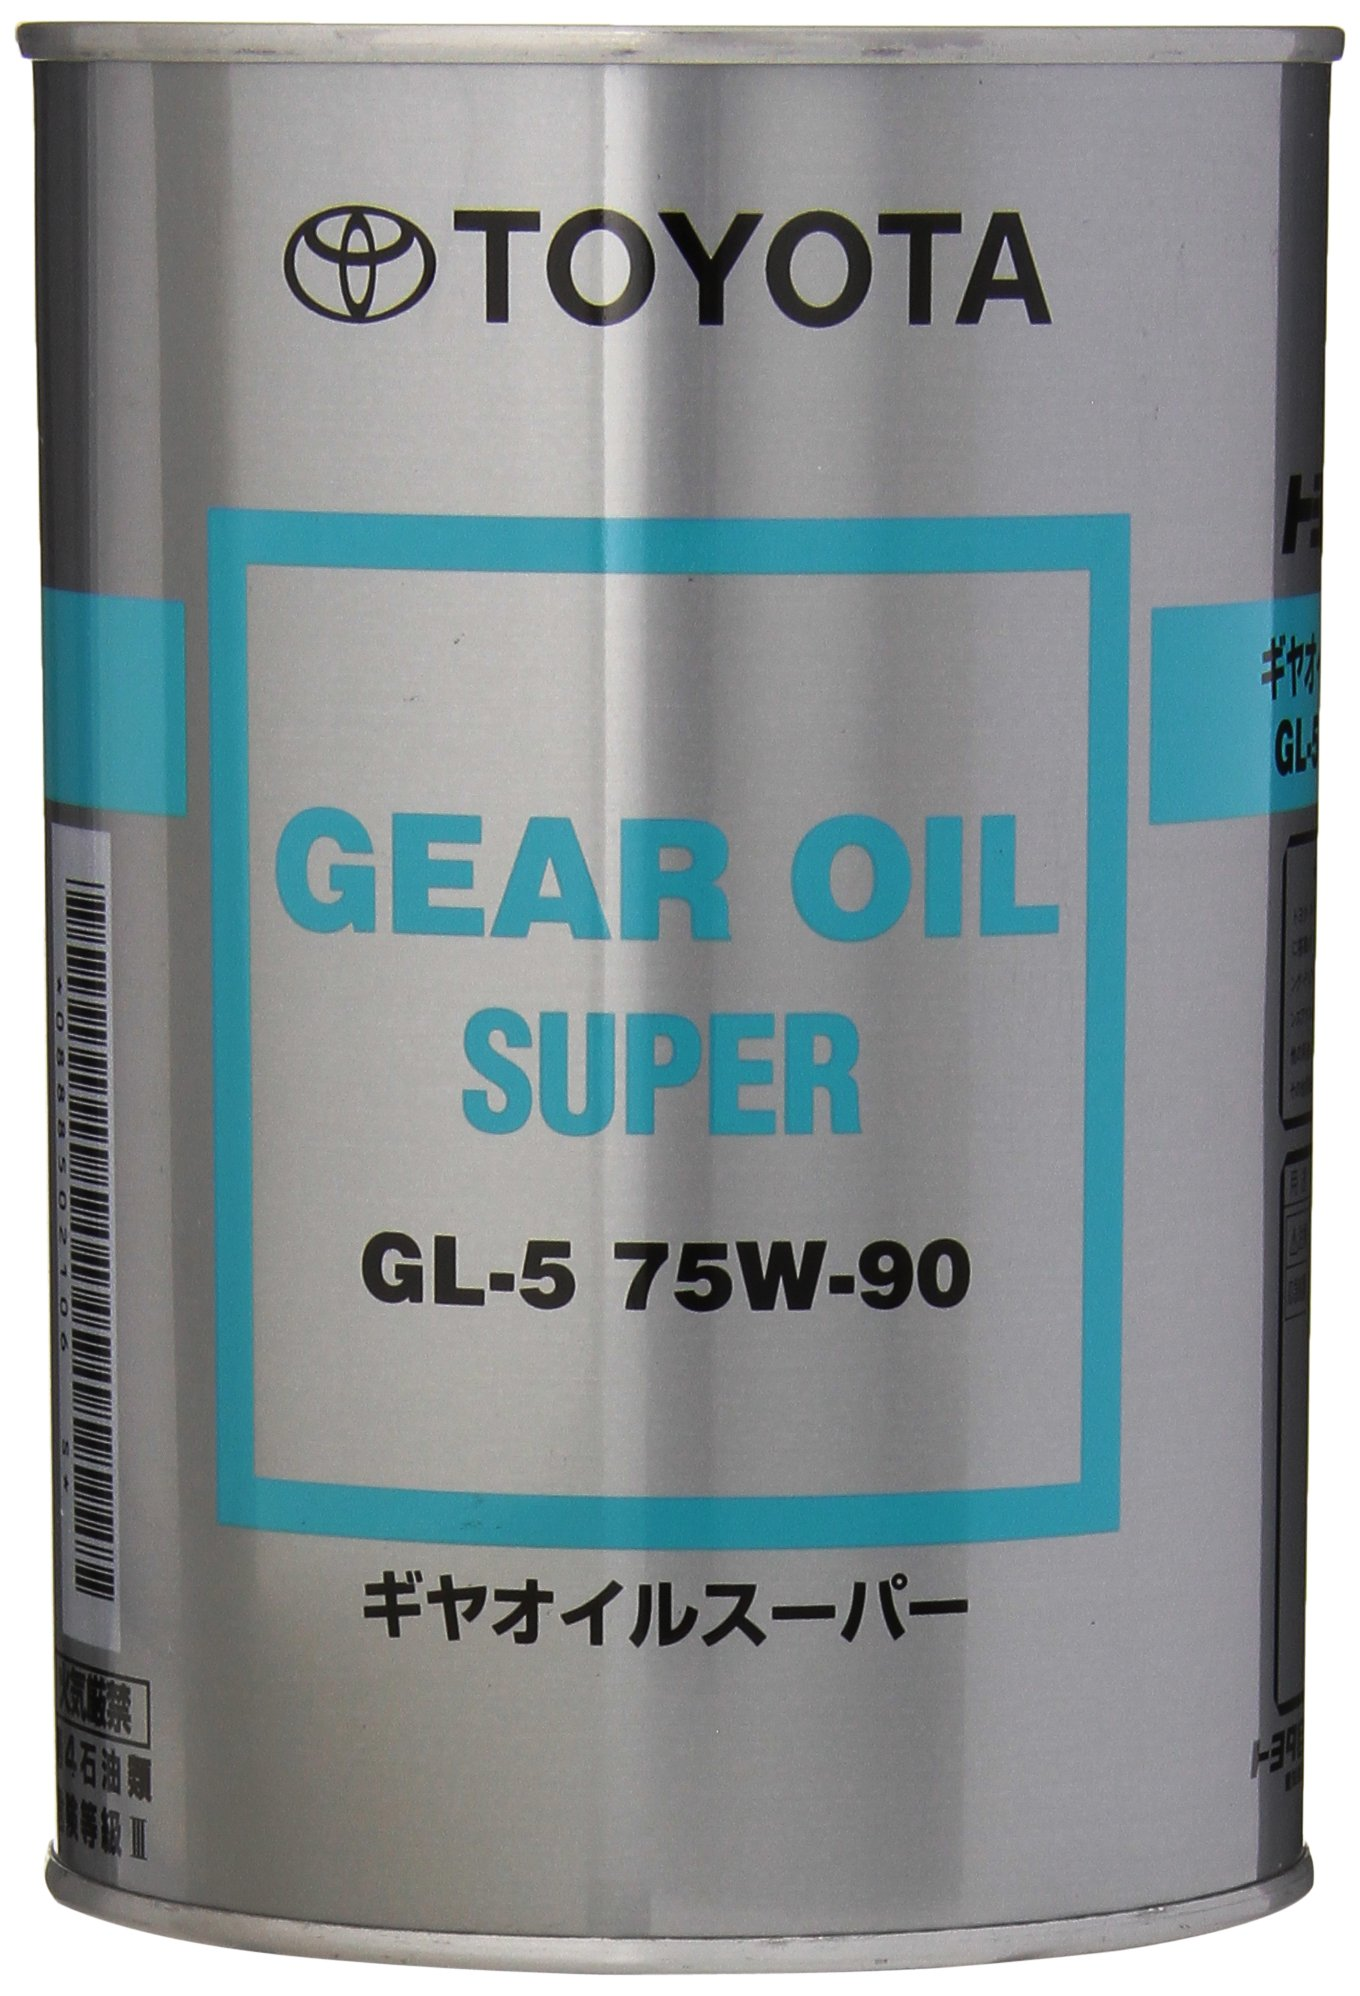 Toyota Genuine Parts 08885-02106 Hypoid API GL-5 75W-90 Gear Lube - 1 Quart by TOYOTA